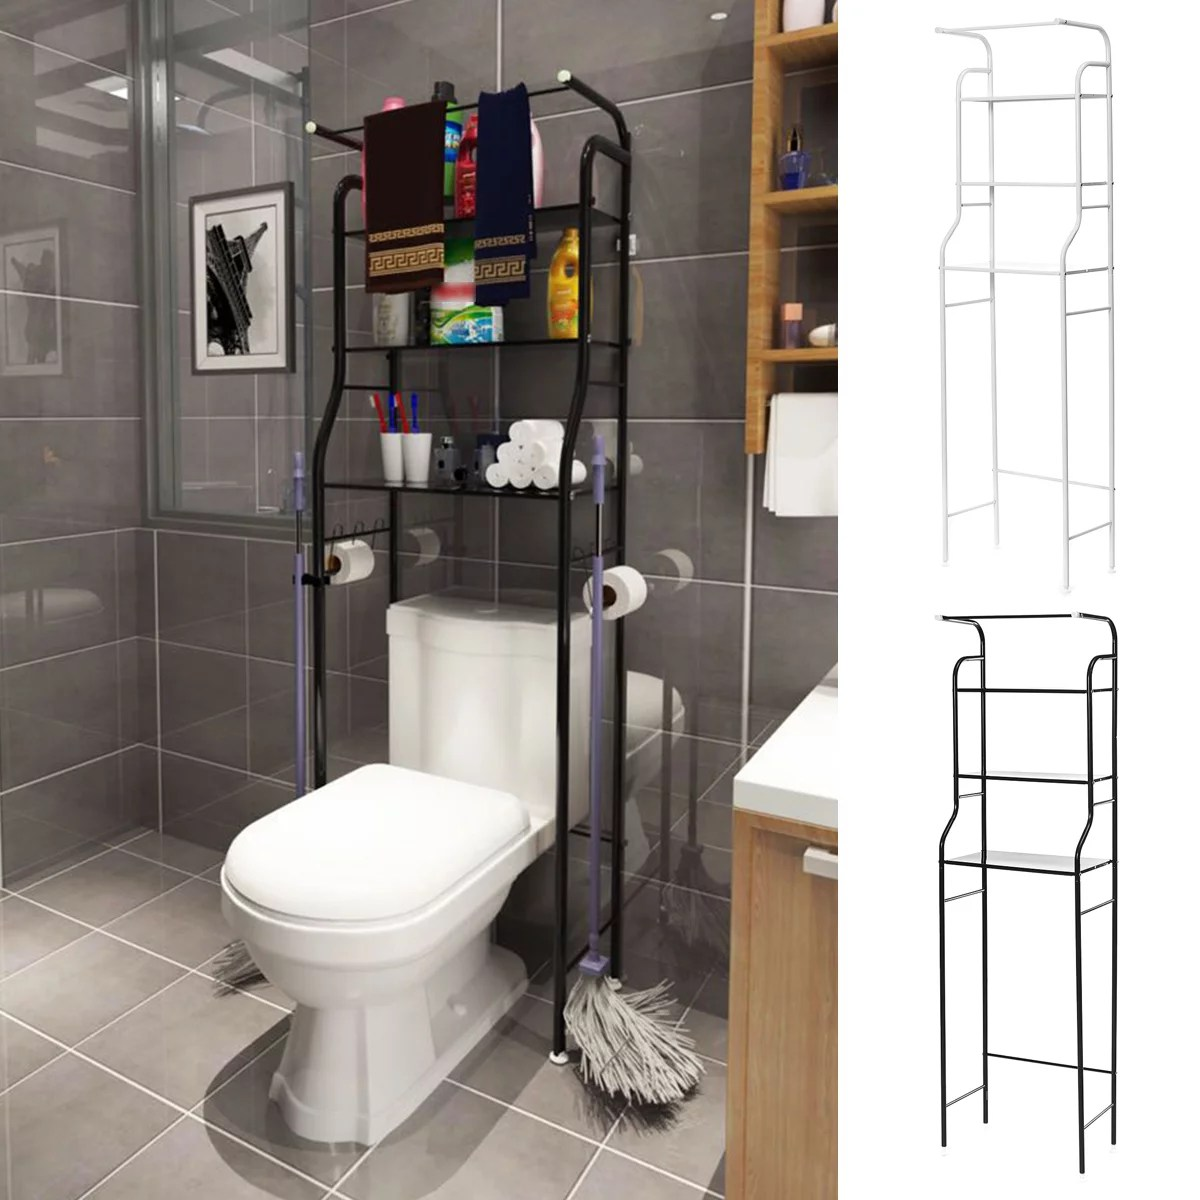 3 tier space saver toilet free standing metal over the toilet storage toilet shelf washing machine rack for home and bathroom